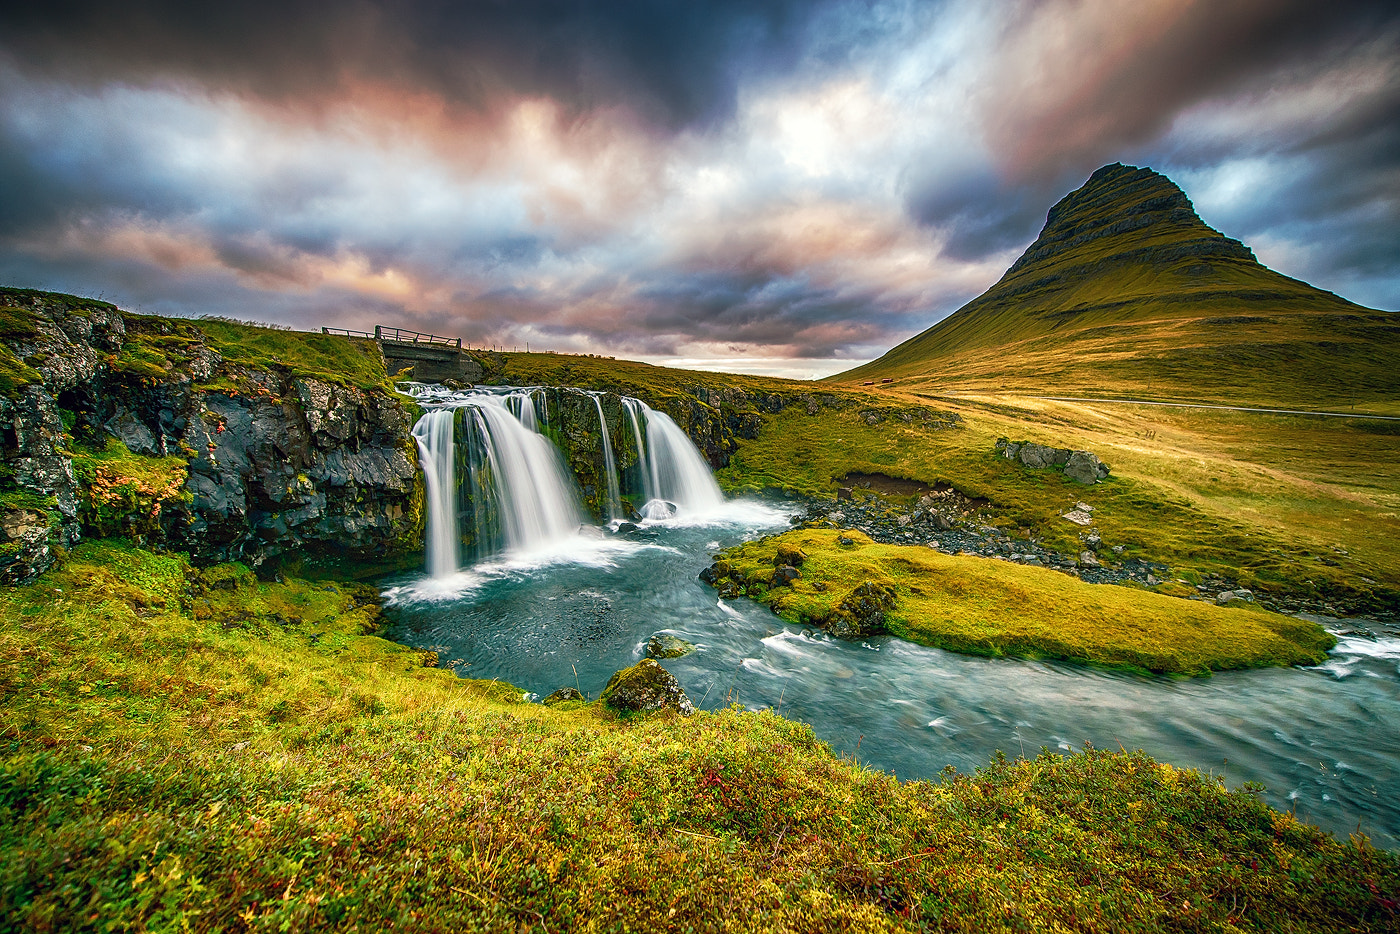 Photograph Kirkjufellsfoss by Stian Rekdal on 500px